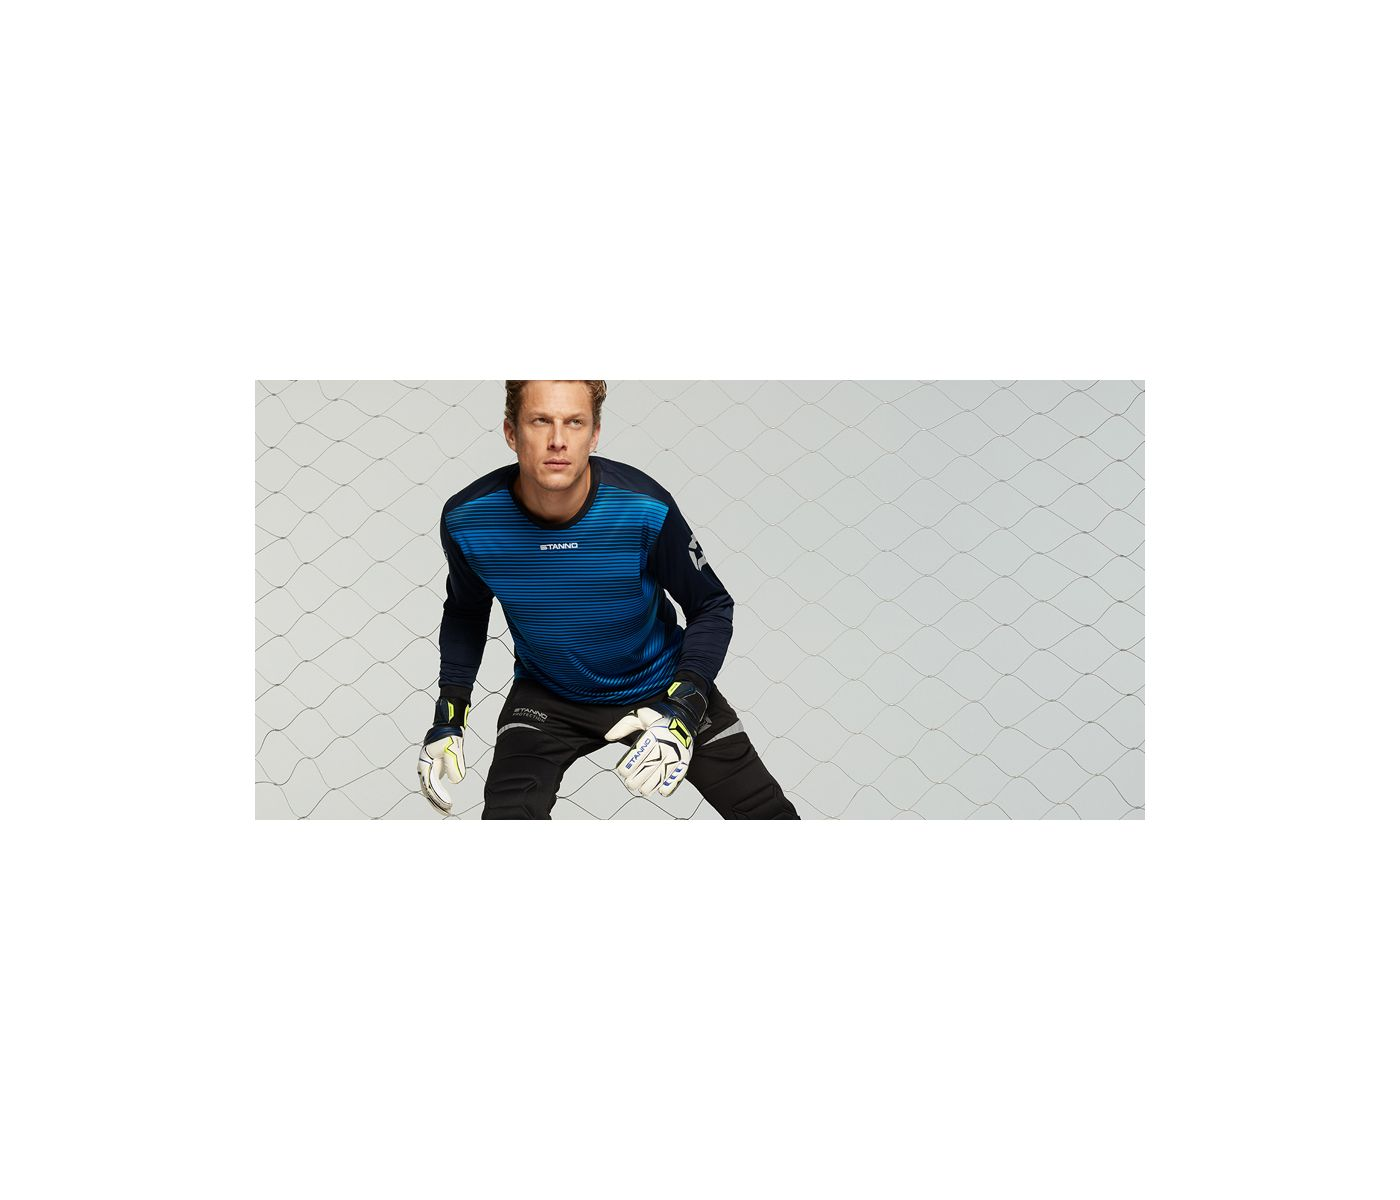 stade_sportkleding_keepers